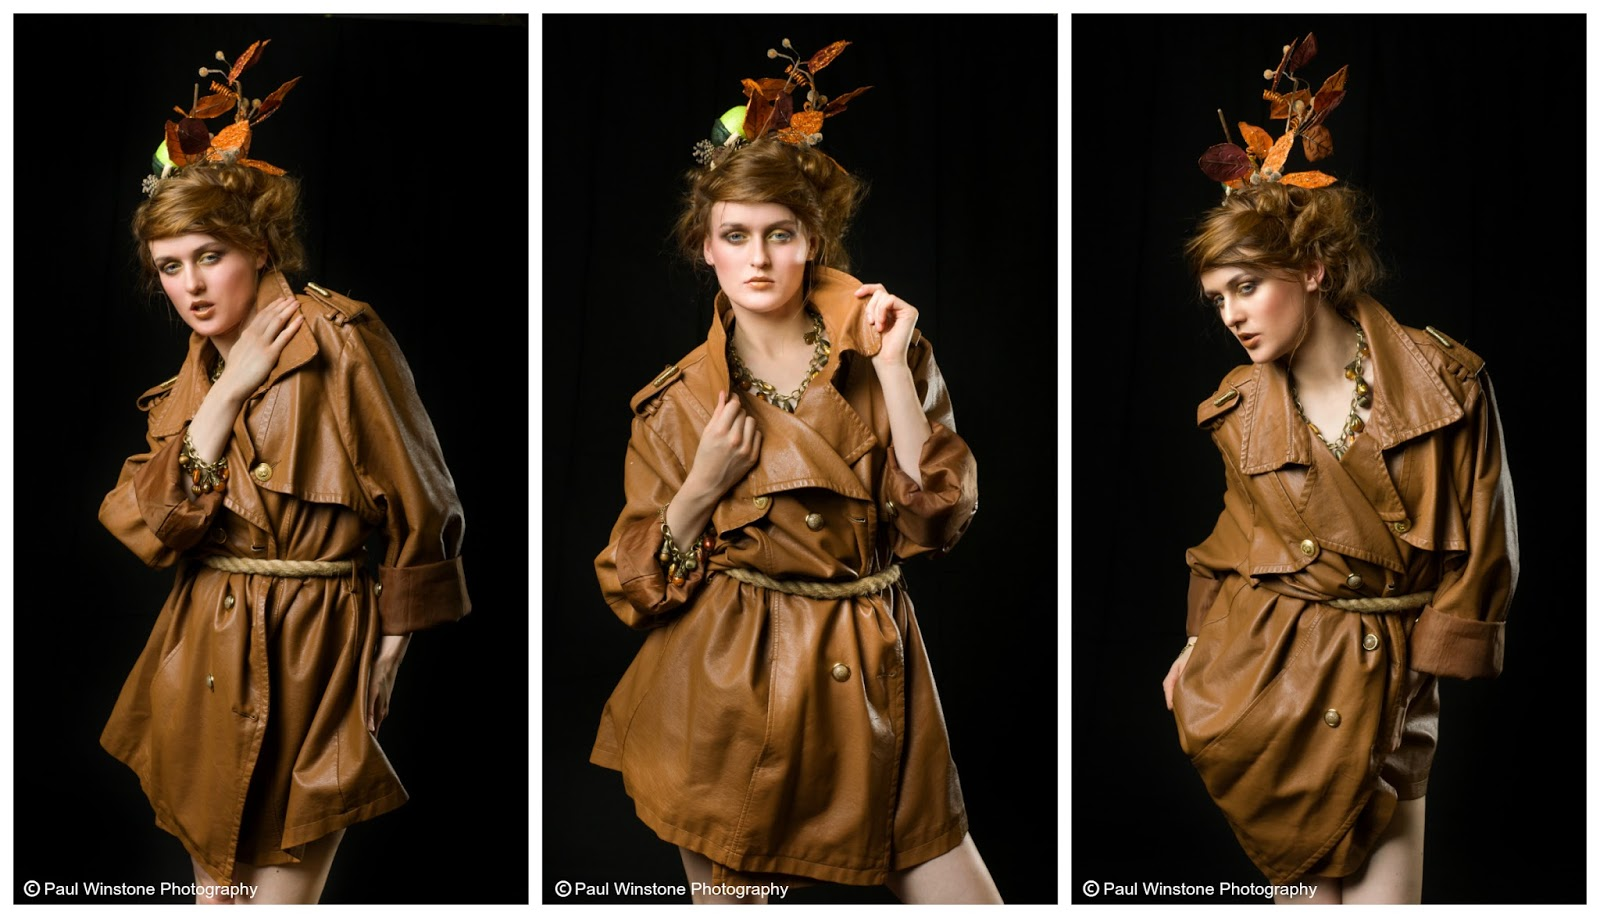 Mystic Magic, styling, high fashion, edgy fashion, autumn fashion, autumn, autumnal, leahter coat, headpiece, creative styling, studio photography,